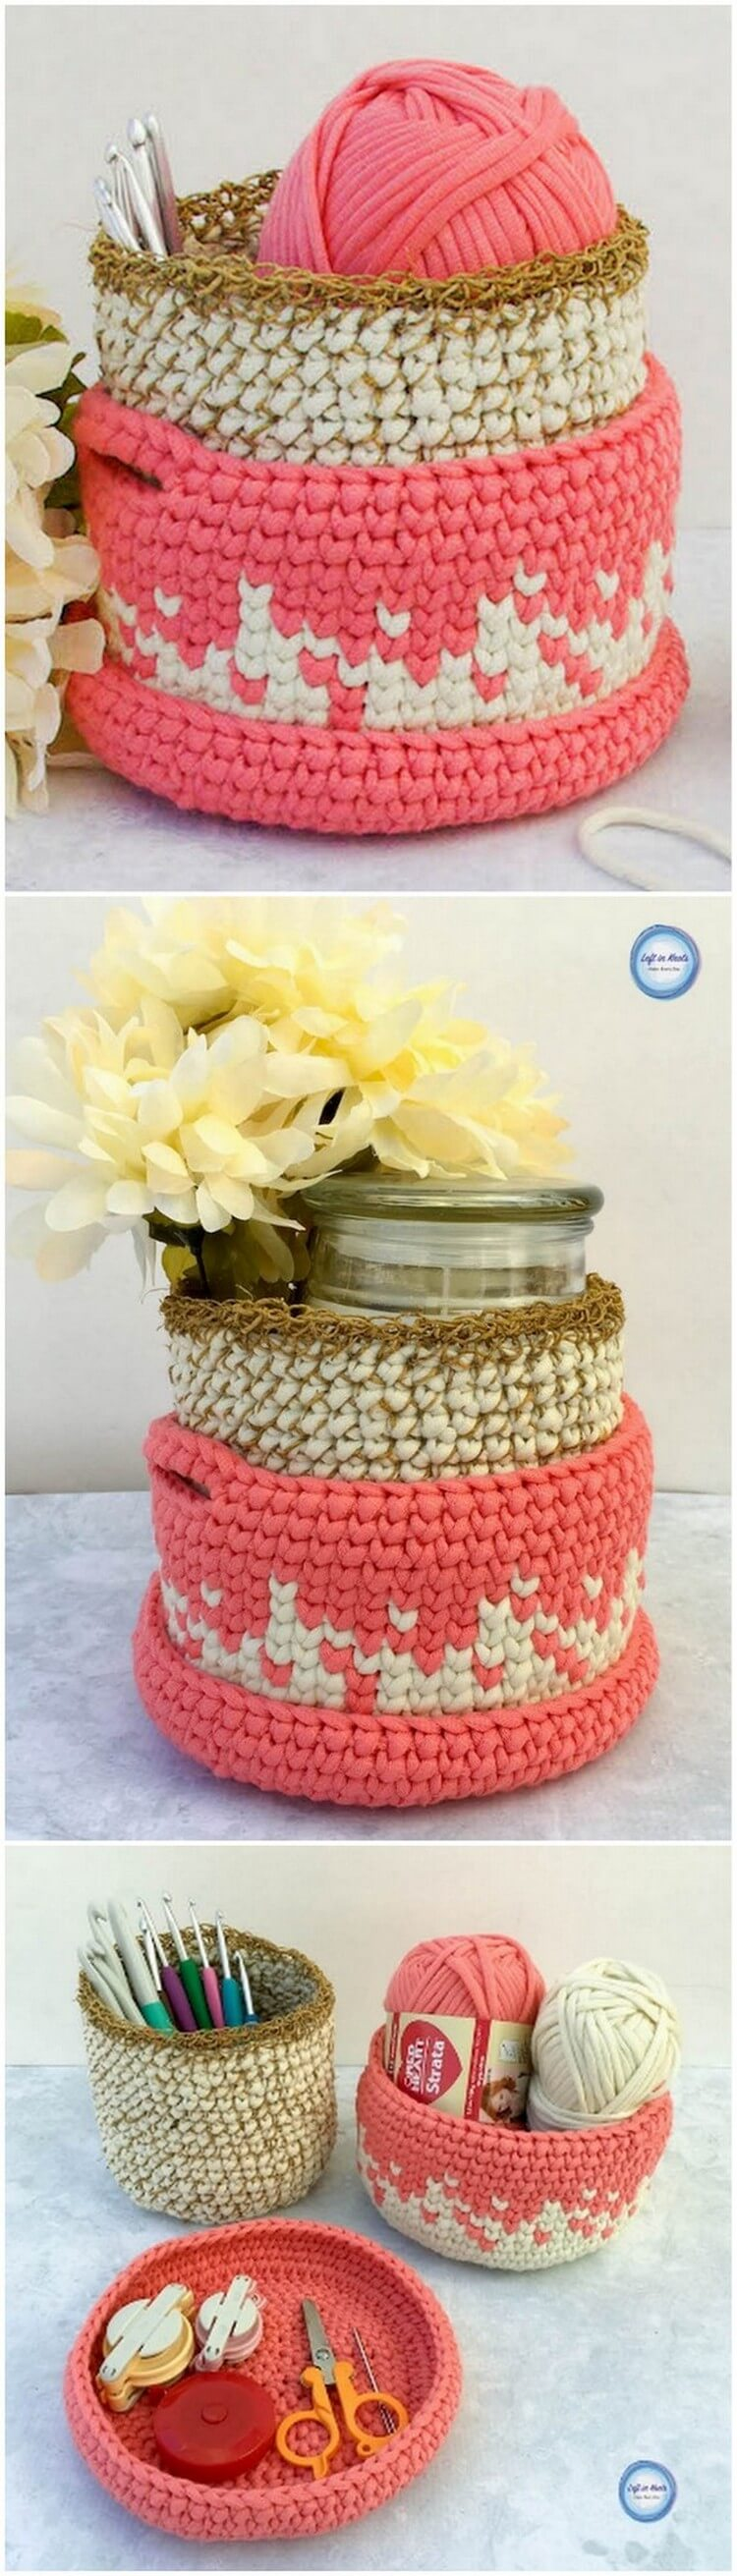 Crochet Basket Pattern (66)